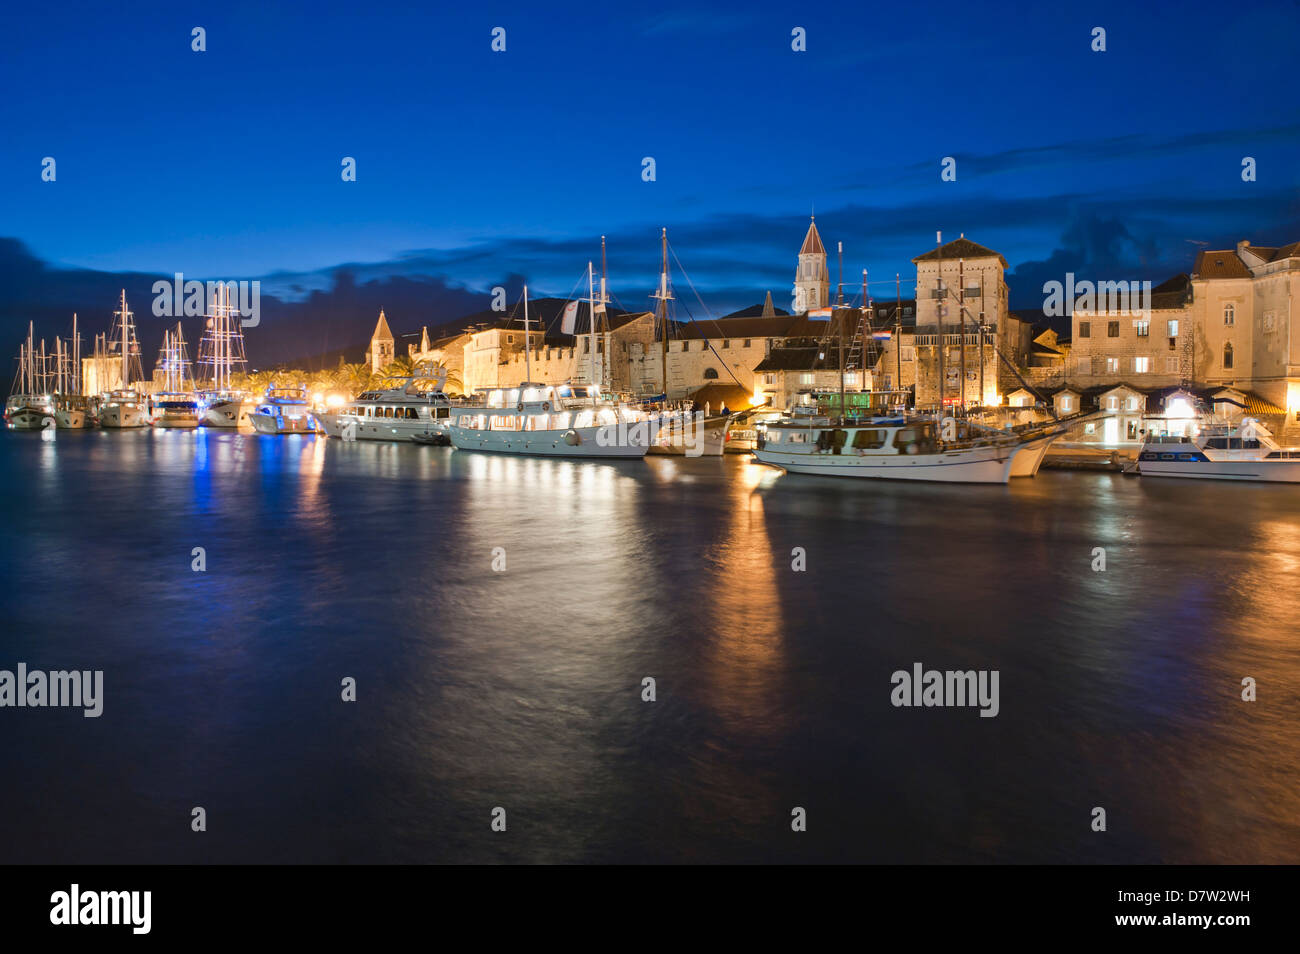 Trogir town and boat docks at night, Trogir, Dalmatian Coast, Adriatic, Croatia - Stock Image